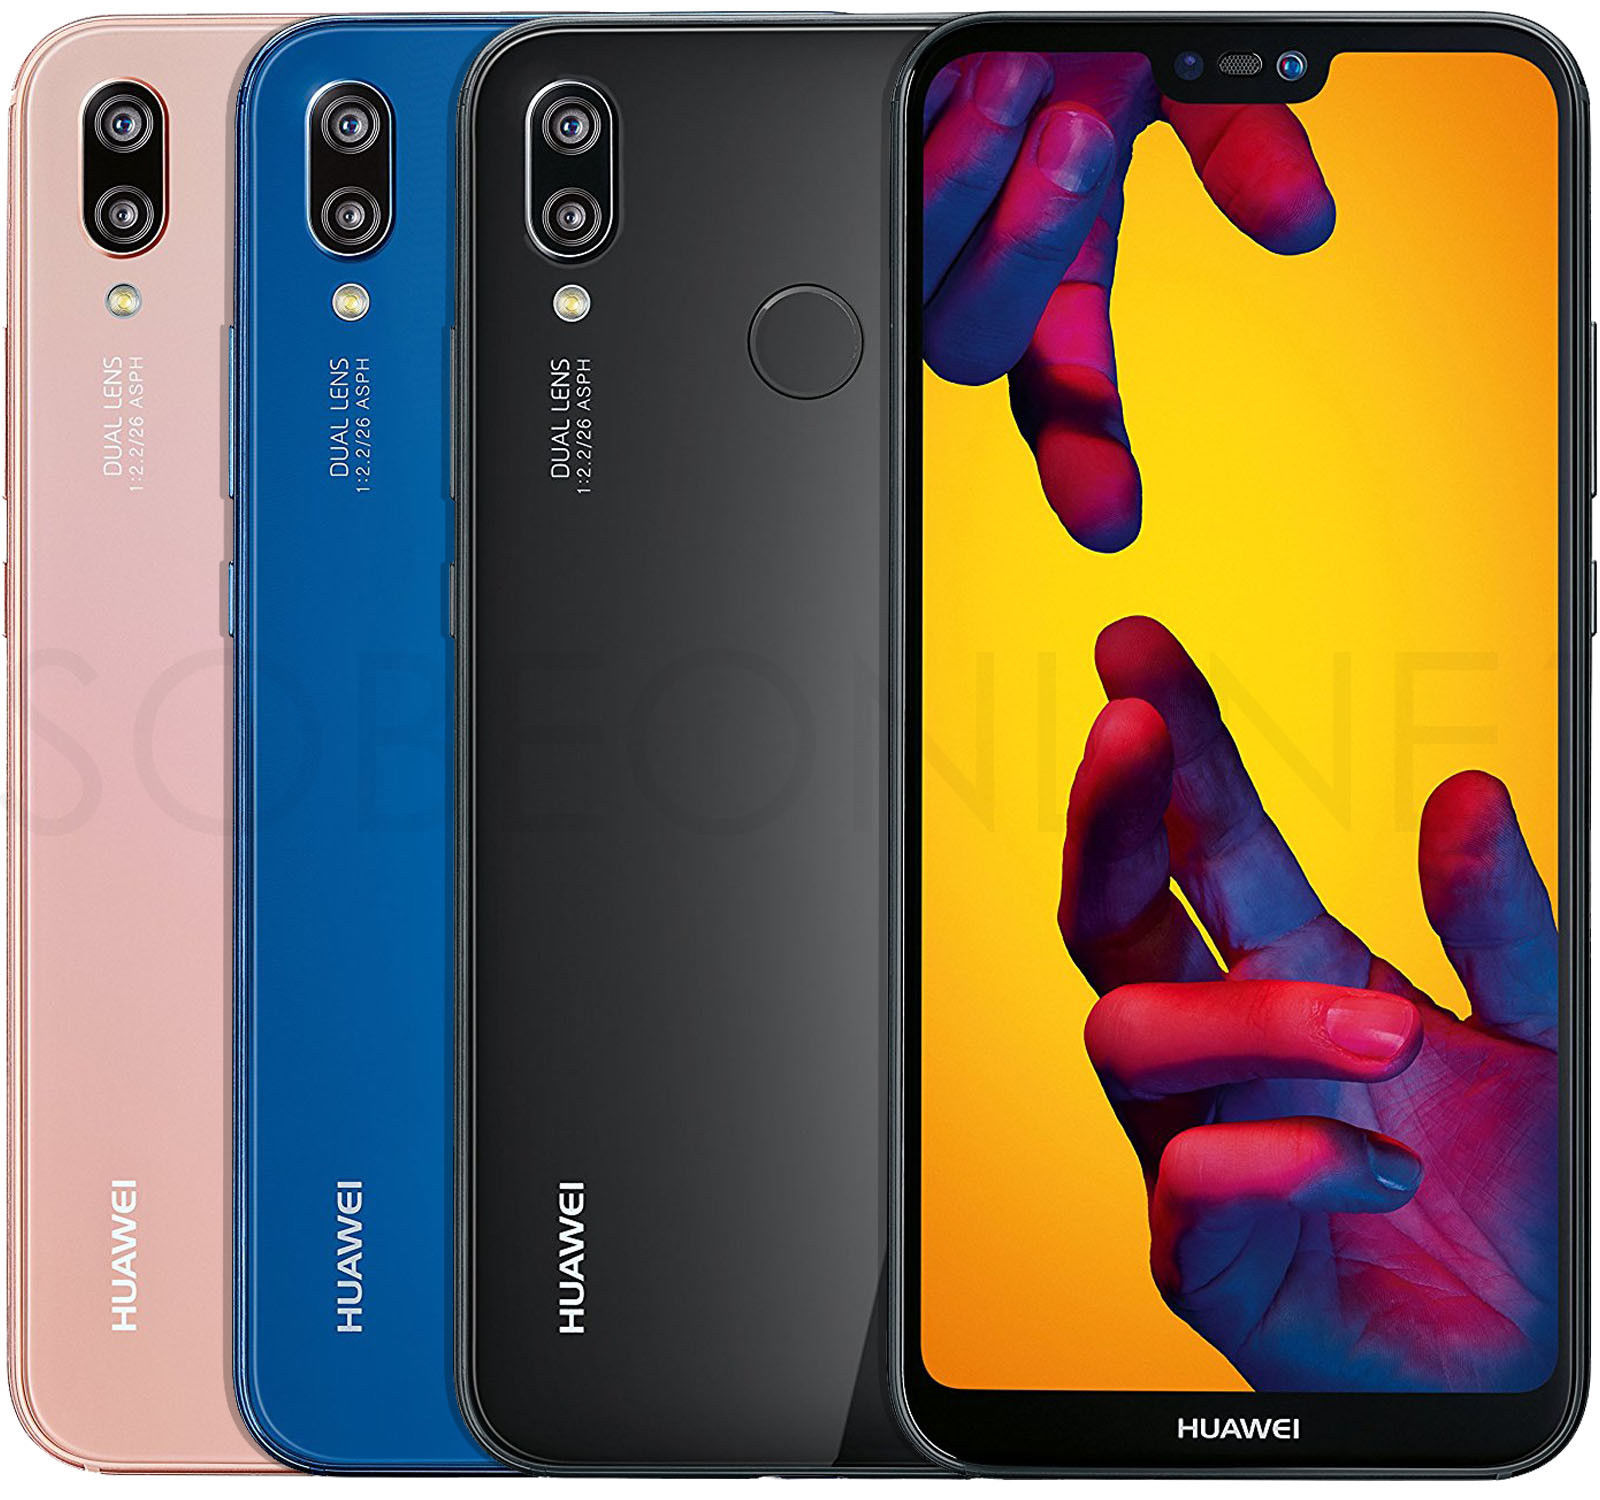 Details About Huawei P20 Lite 32gb 4gb Dualsim Factory Unlocked 5 8 Black Blue Pink